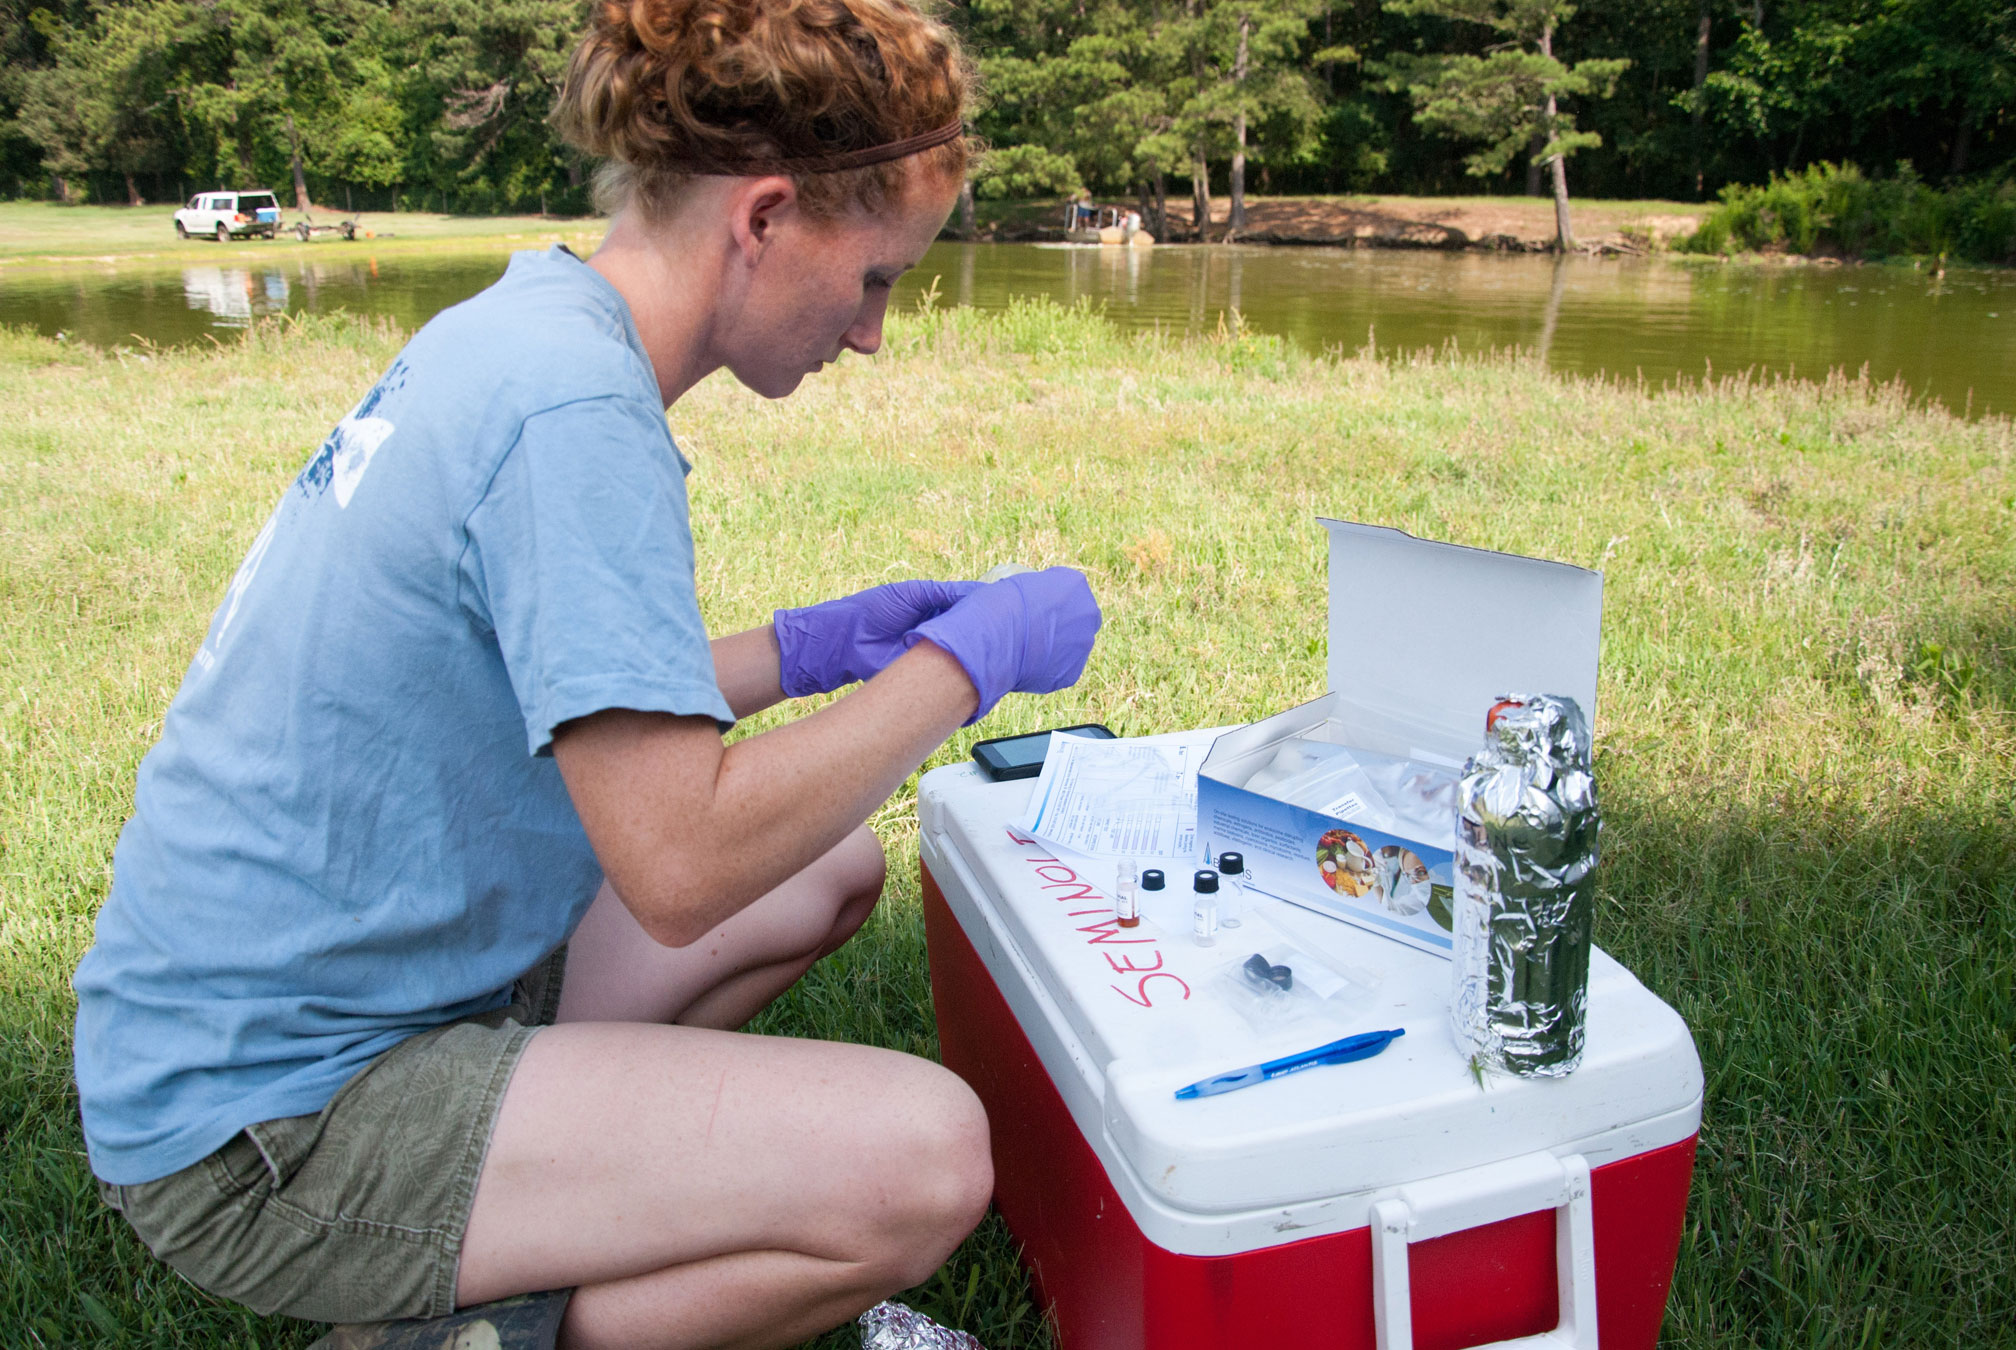 Rebecca Haynie, a toxicologist with the UGA Warnell School of Forestry and Natural Resources, checks water samples at a farm in Dacula.